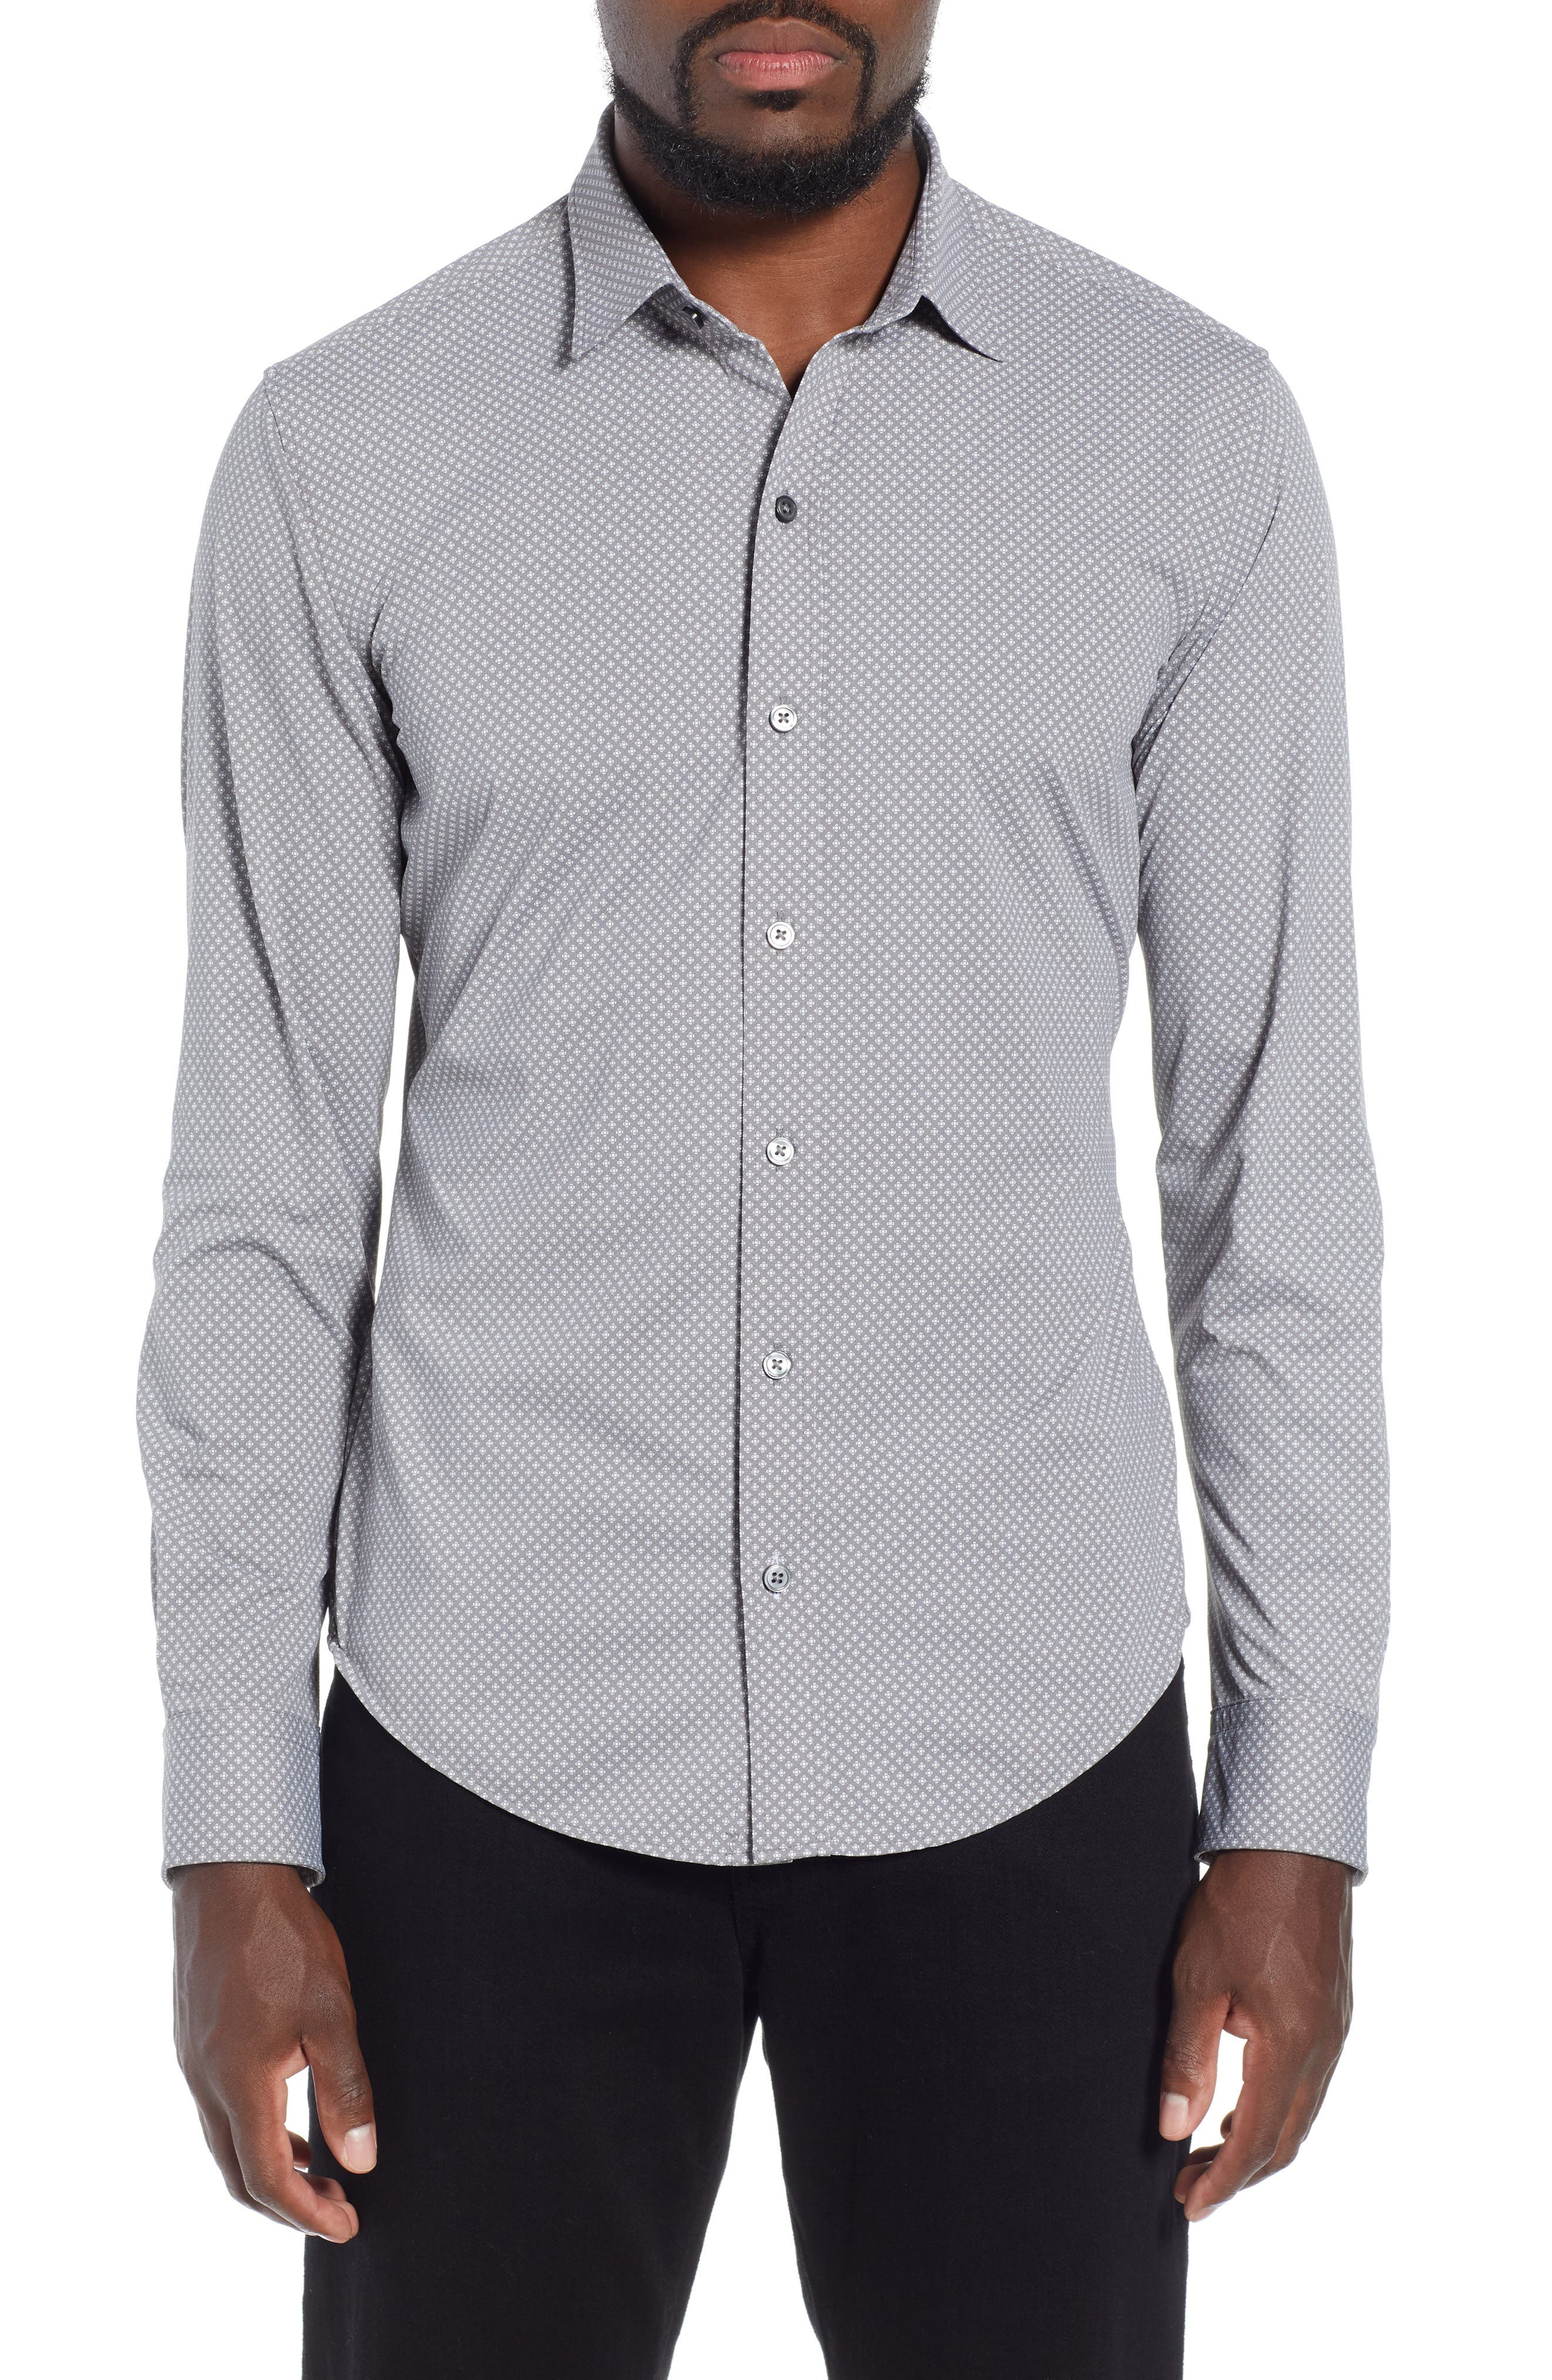 Robbie Extra Trim Fit Microprint Sport Shirt,                             Main thumbnail 1, color,                             GREY